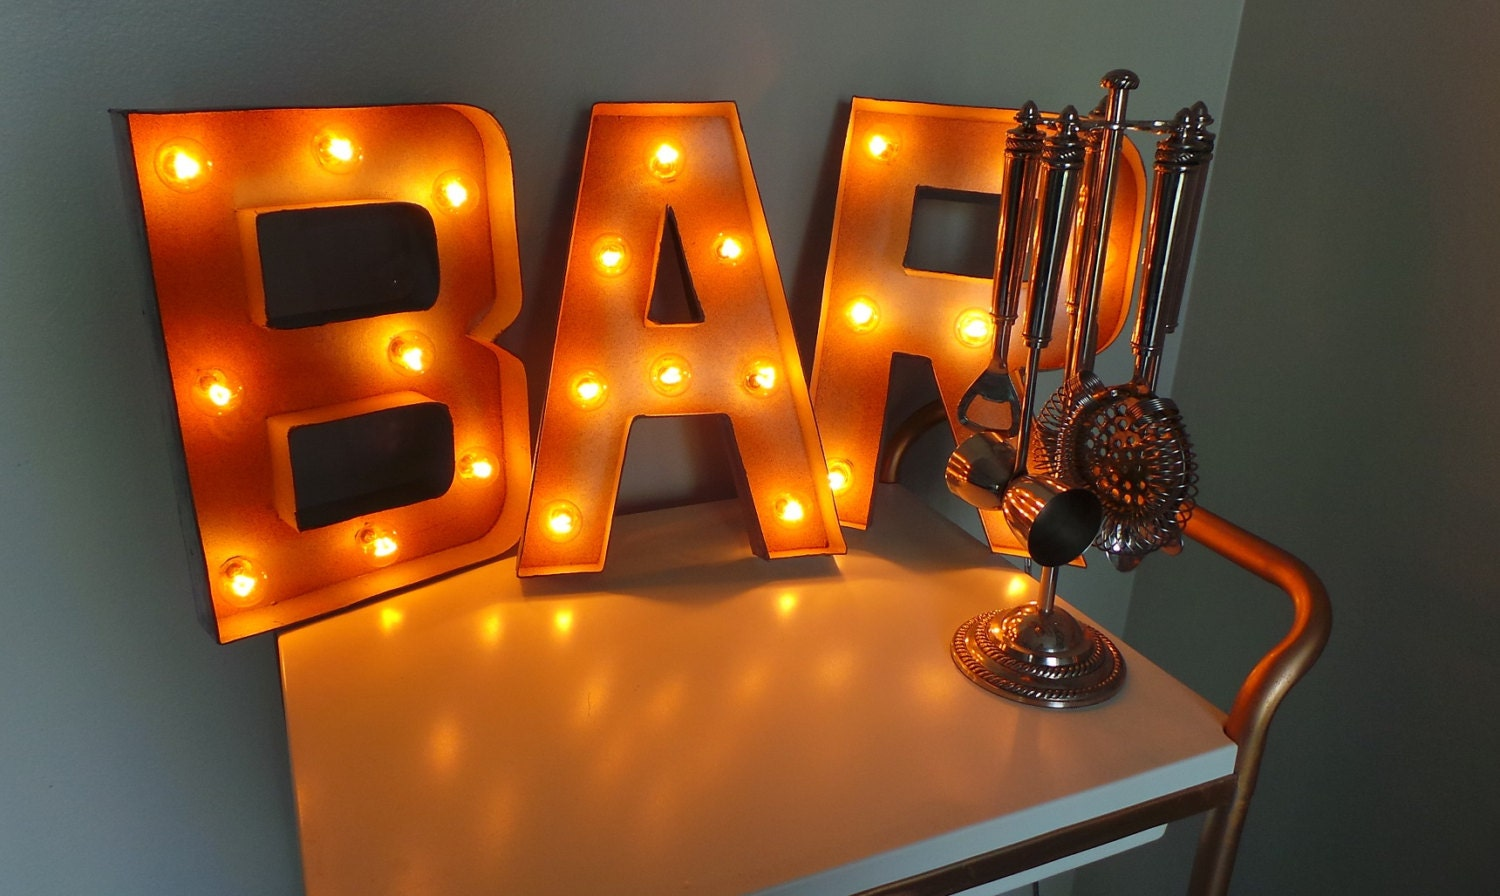 Light up bar signs 28 images illuminated nostalgia bar wall light up bar signs 12 plug in bar light up marquee sign light up bar signs aloadofball Image collections